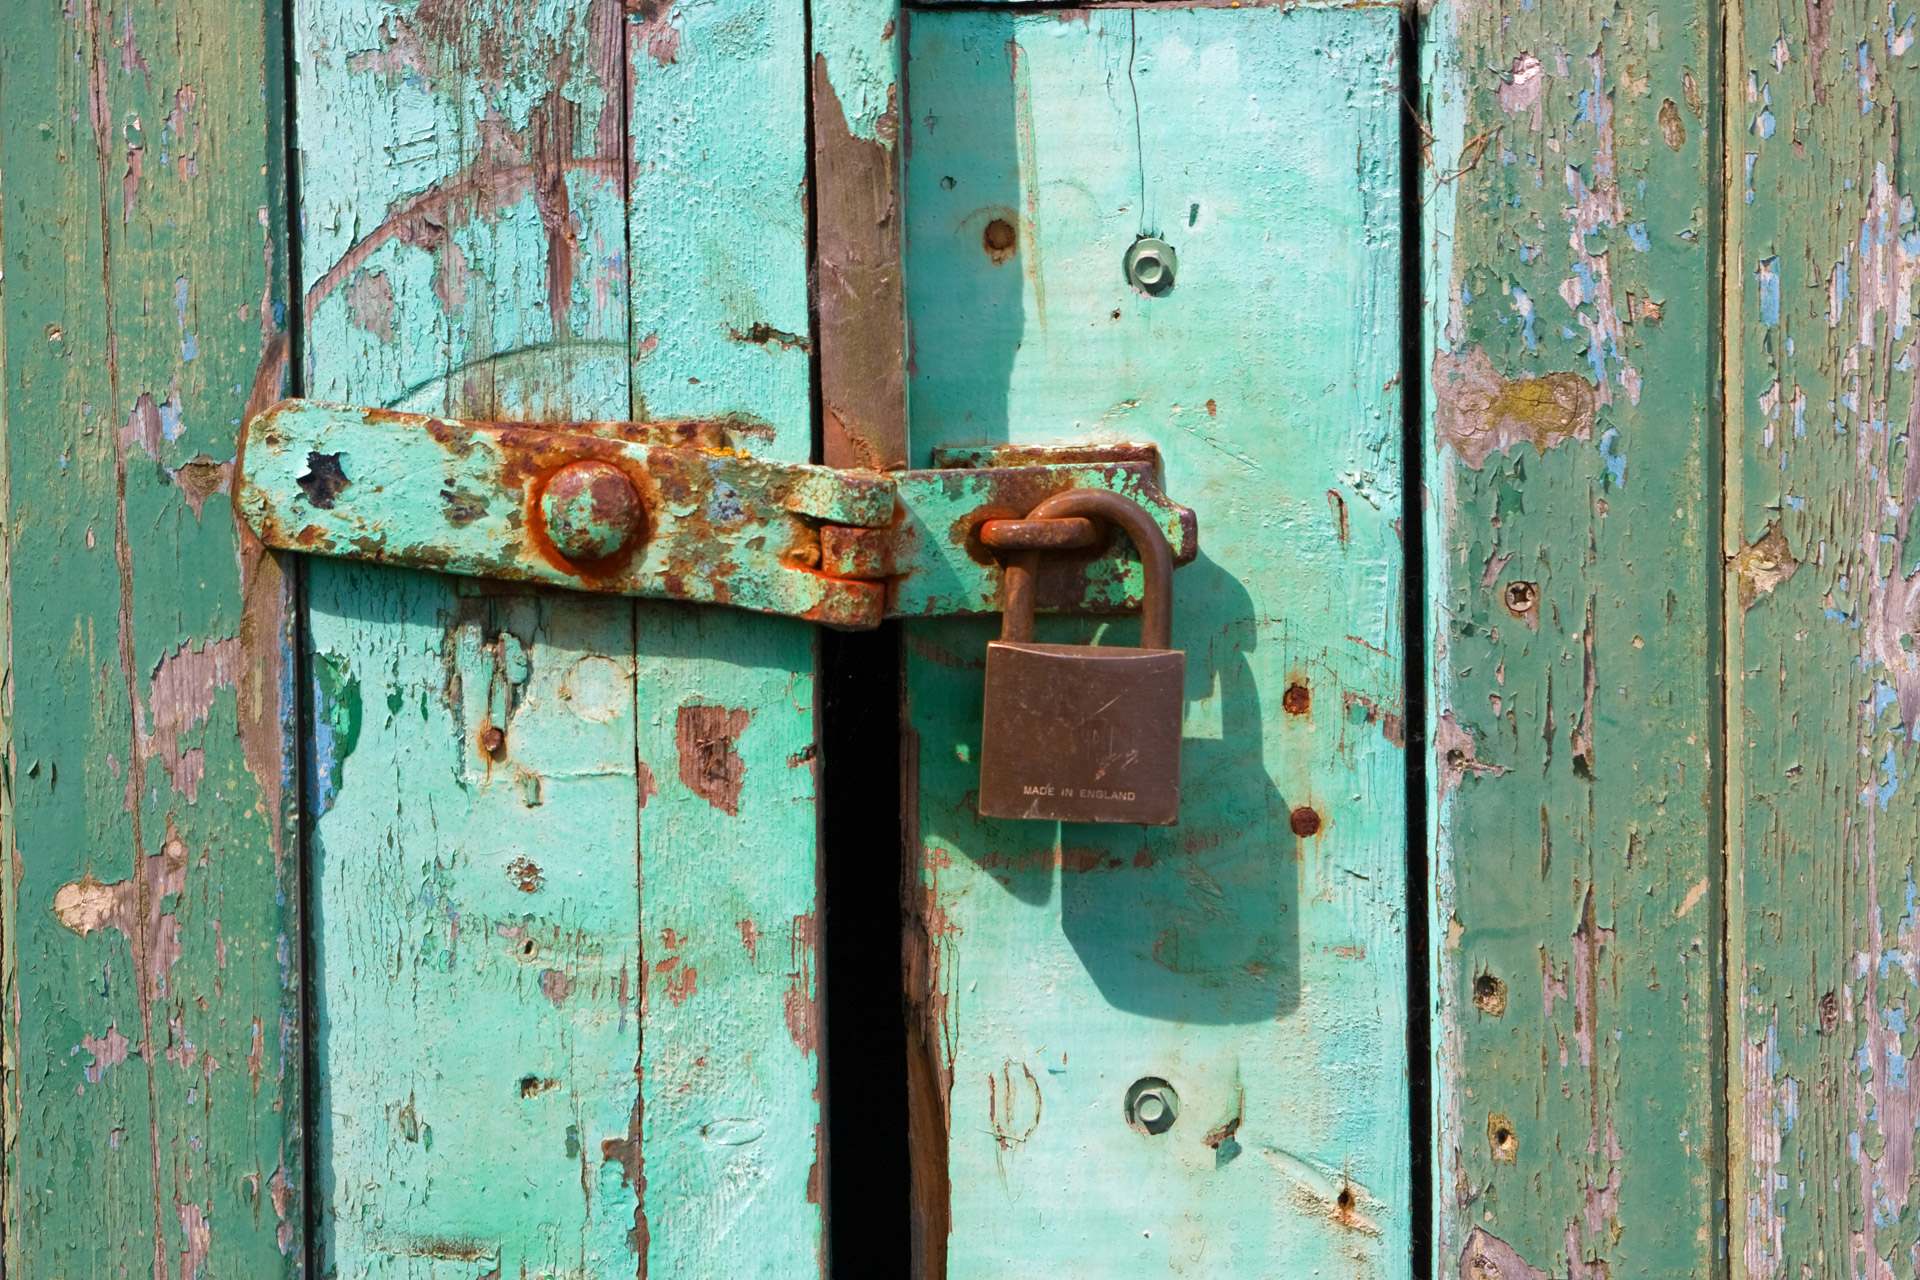 Rusty Old Padlock Free Stock Photo - Public Domain Pictures